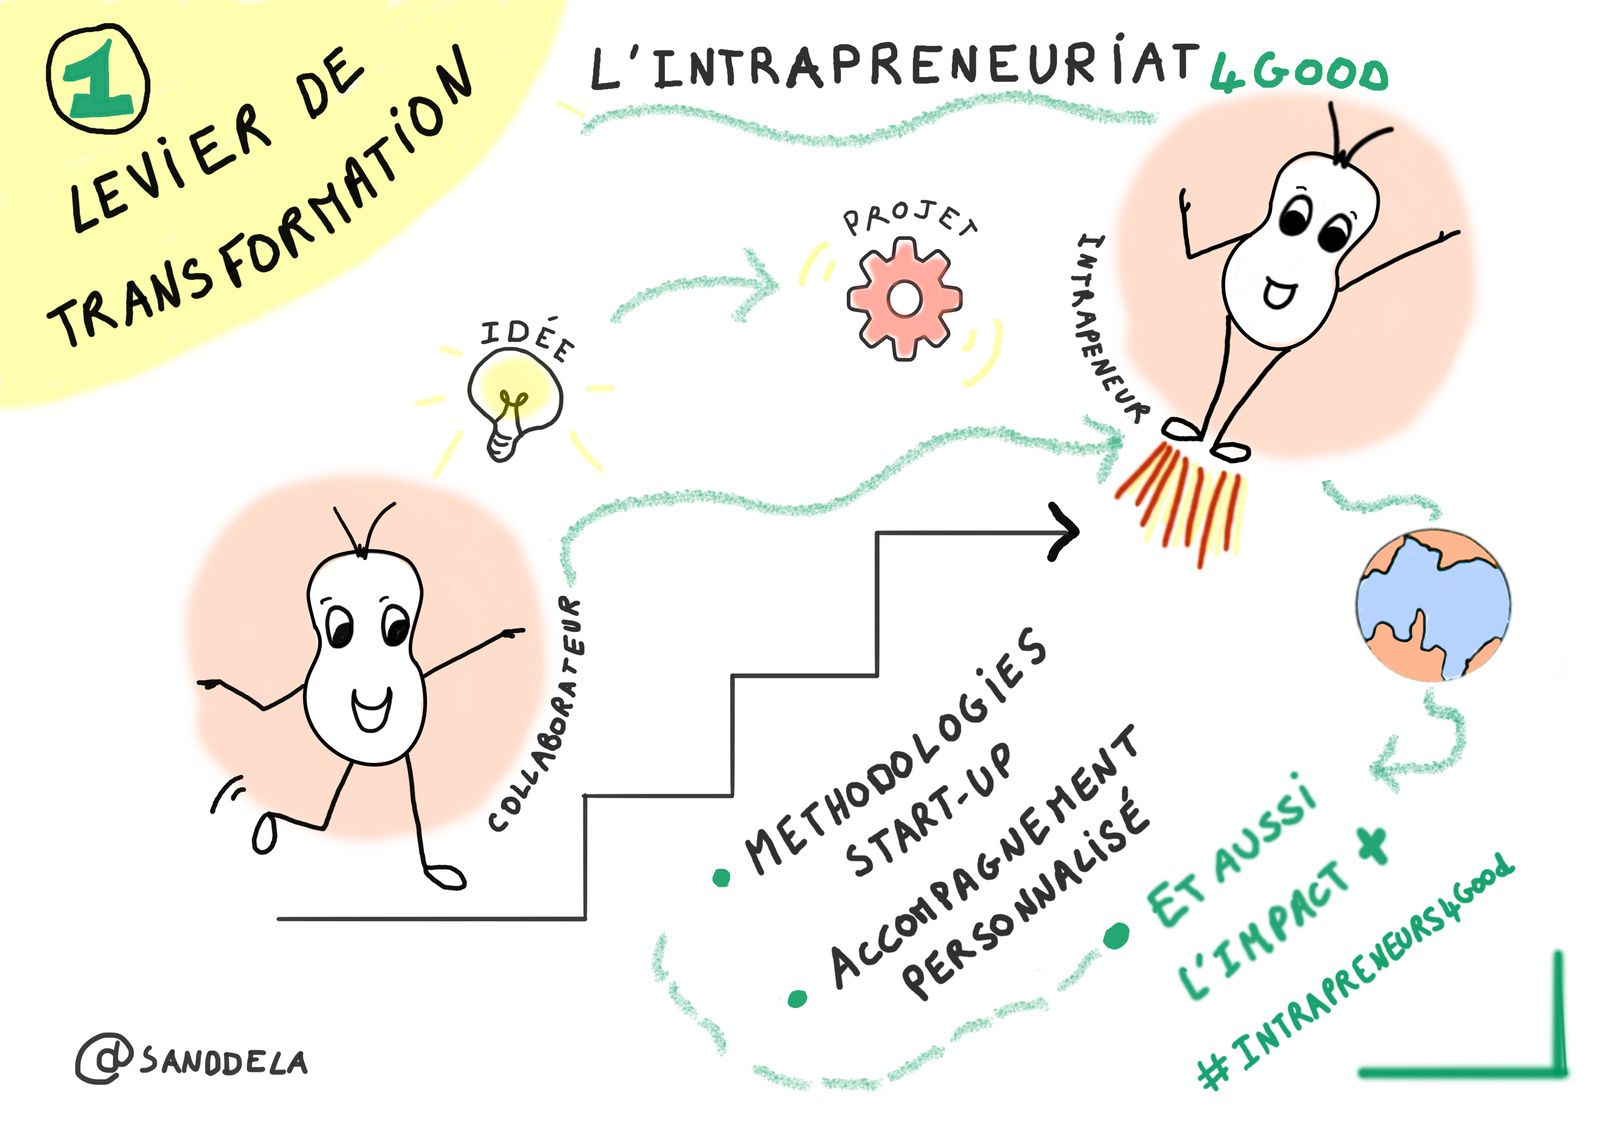 BNP Paribas - People'sLab4Good #intrapreneurs4Good - Sandrine Delage - SANDDELA - Intrapreneur for good - Intrapreneur - business for good